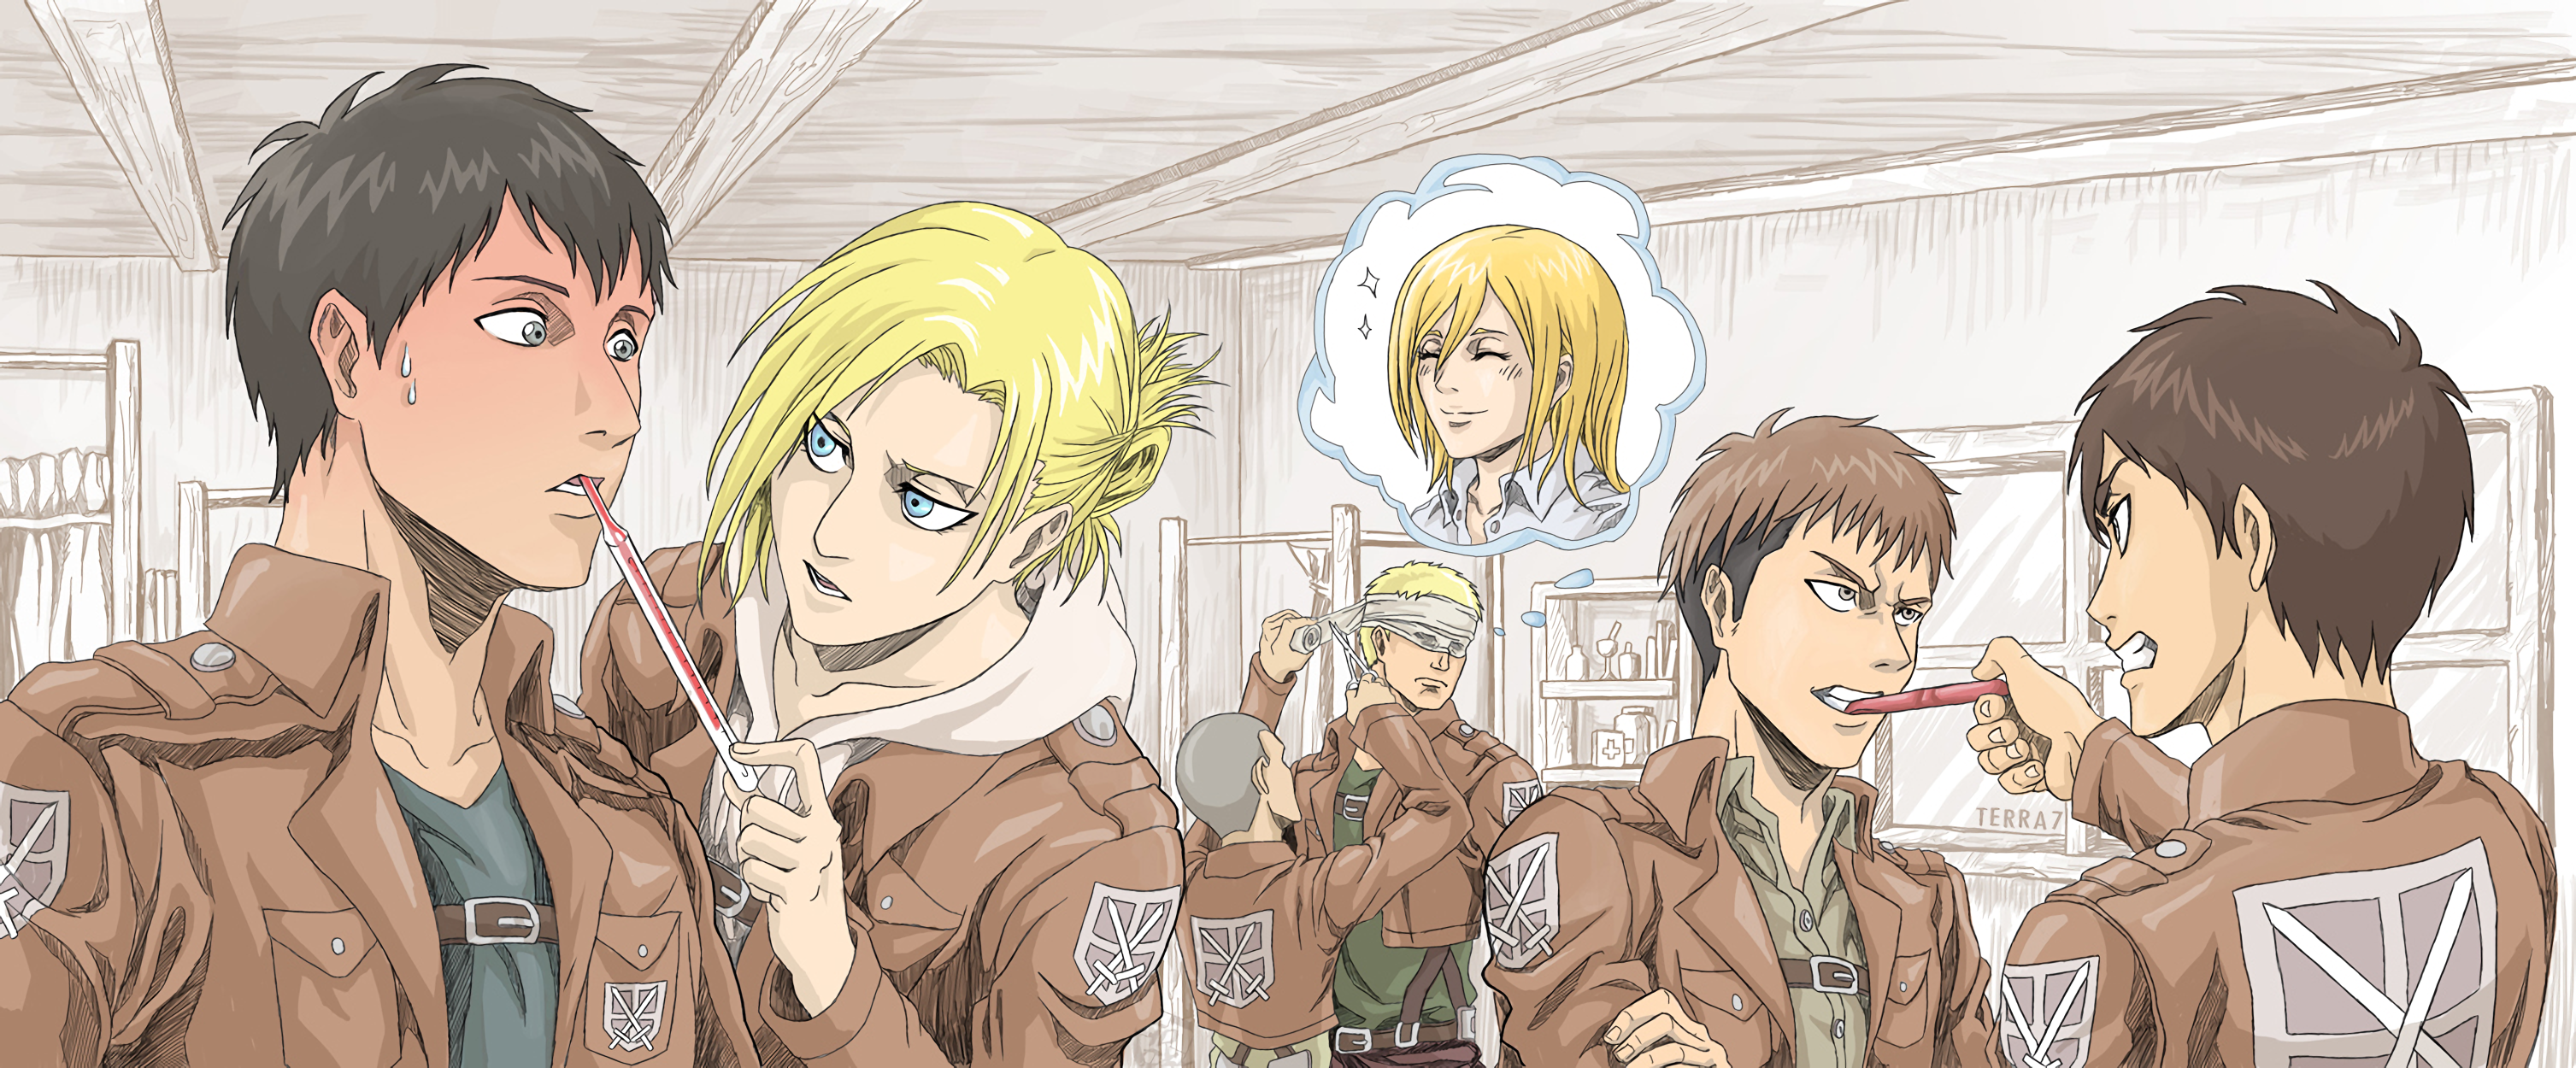 Annie Leonhart Bertholdt Hoover Connie Springer Eren Yeager Jean Kirstein Reiner Braun Shingeki No K Wallpaper Resolution 3014x1250 Id 981094 Wallha Com